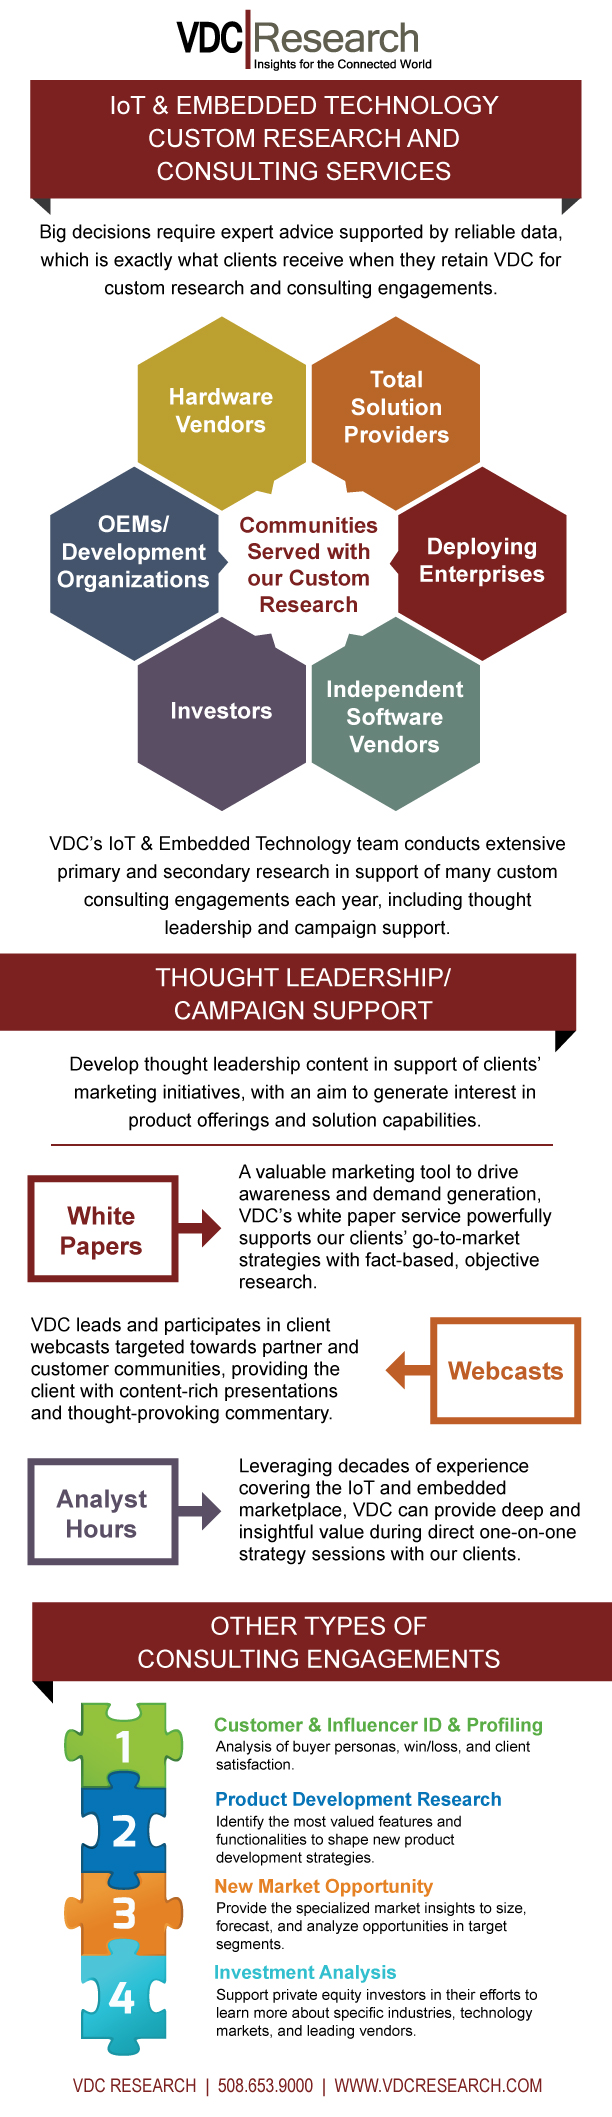 IoT & Embedded Technology Custom Consulting Infographic